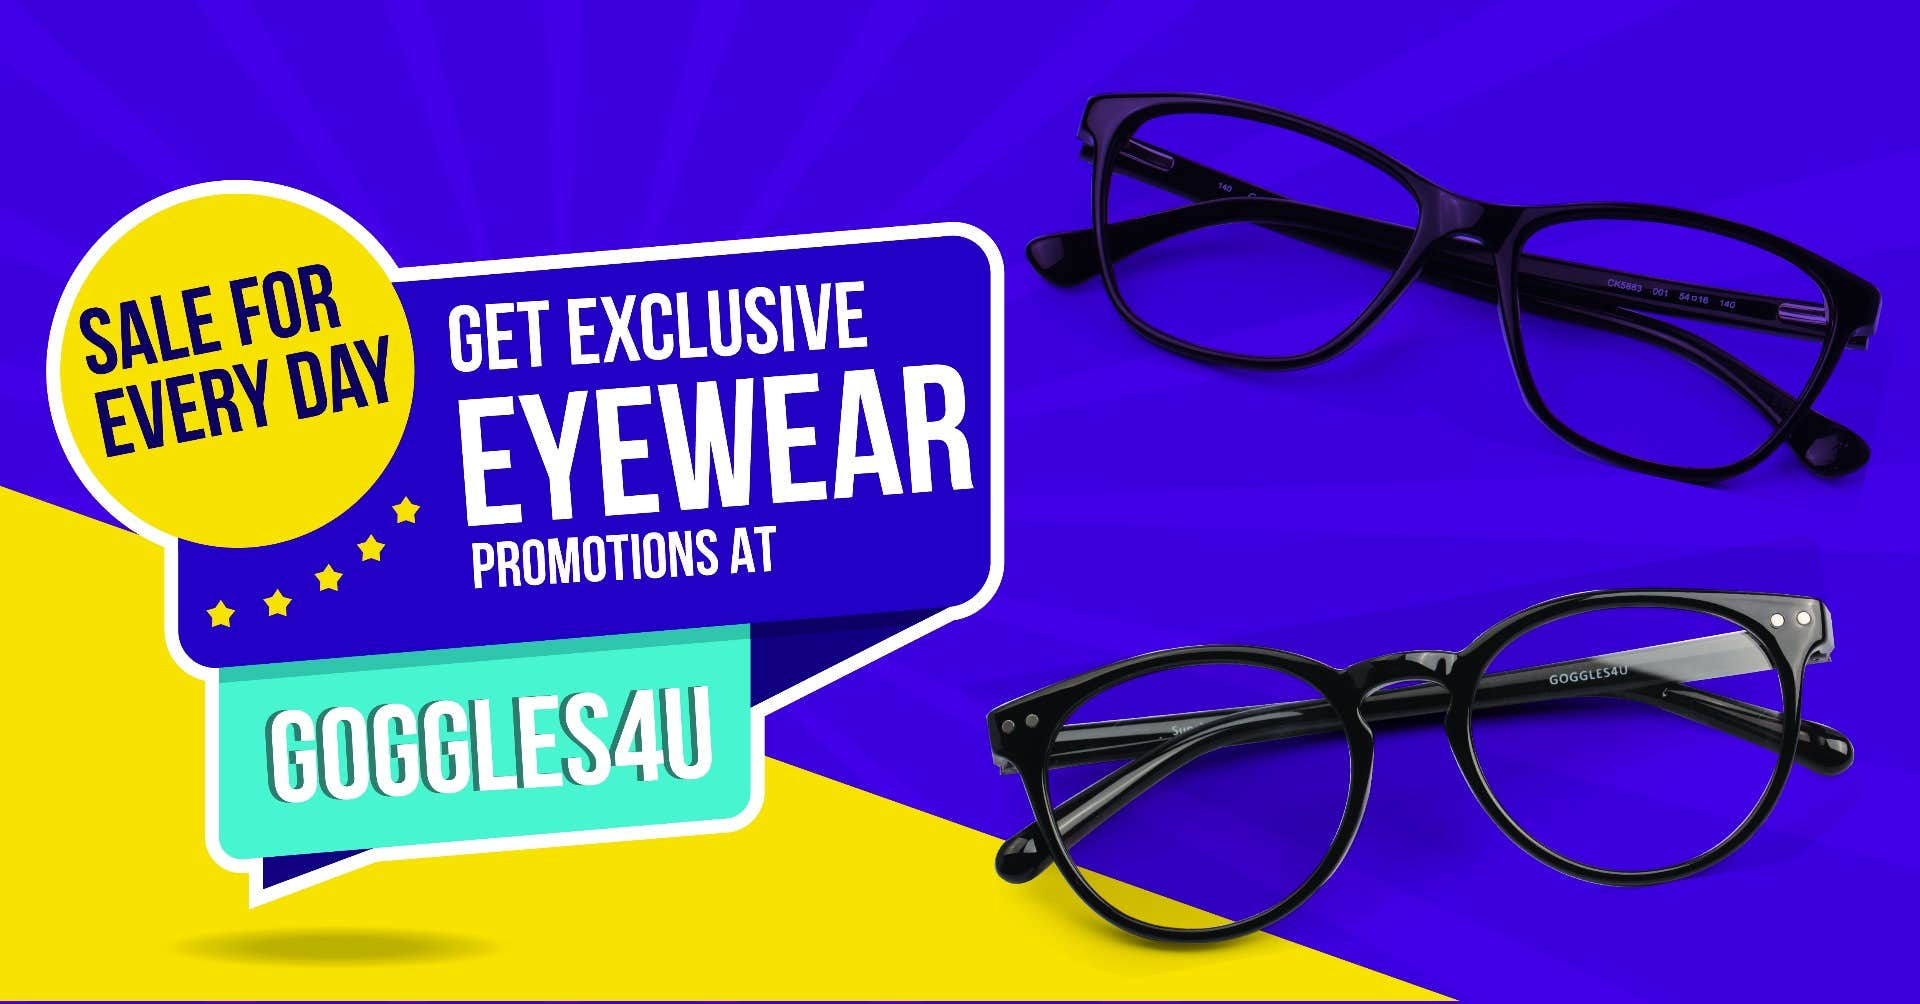 Sale For Every Day - The Exclusive Eyewear Promotions at Goggles4U